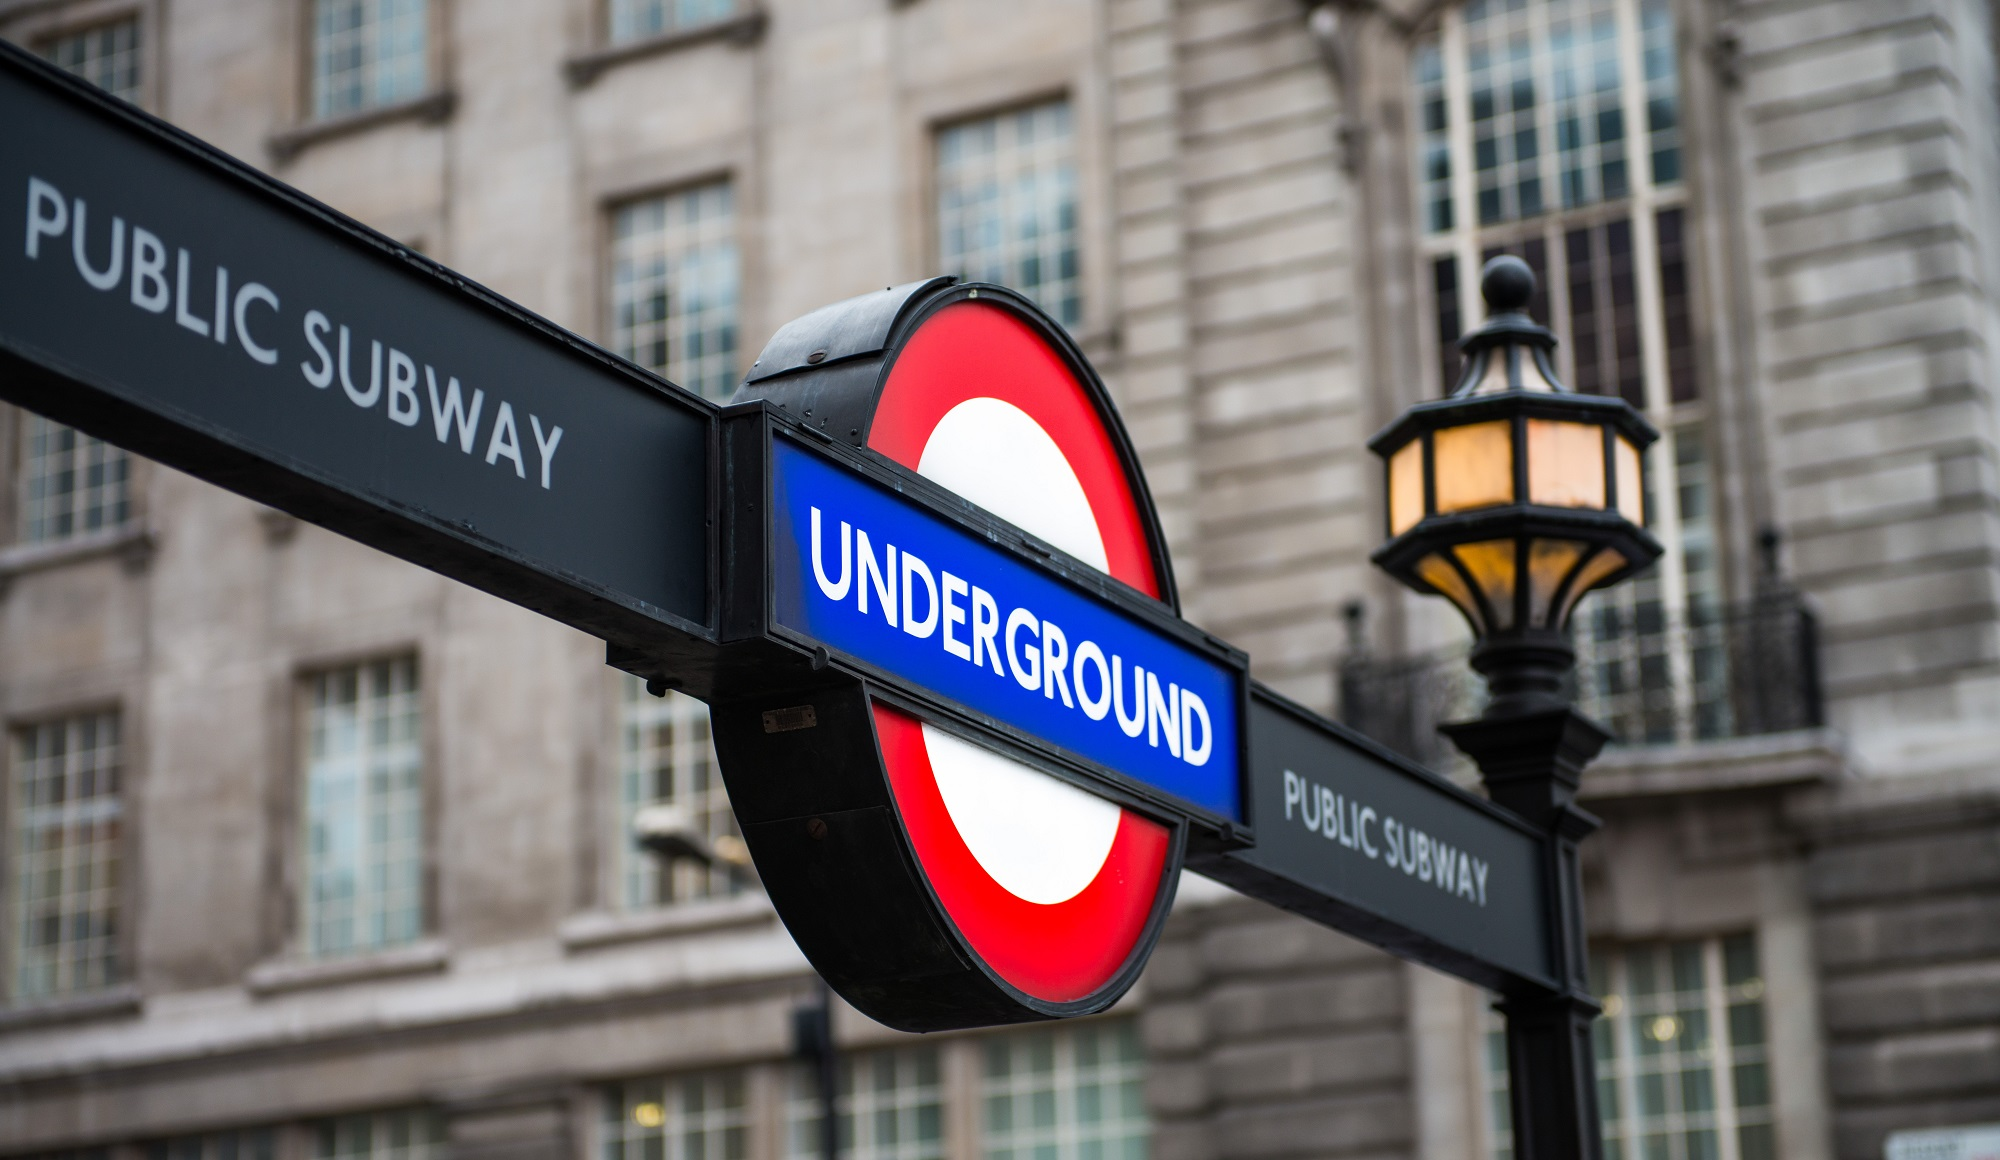 The London Underground: The best lines to live on for an easy commute